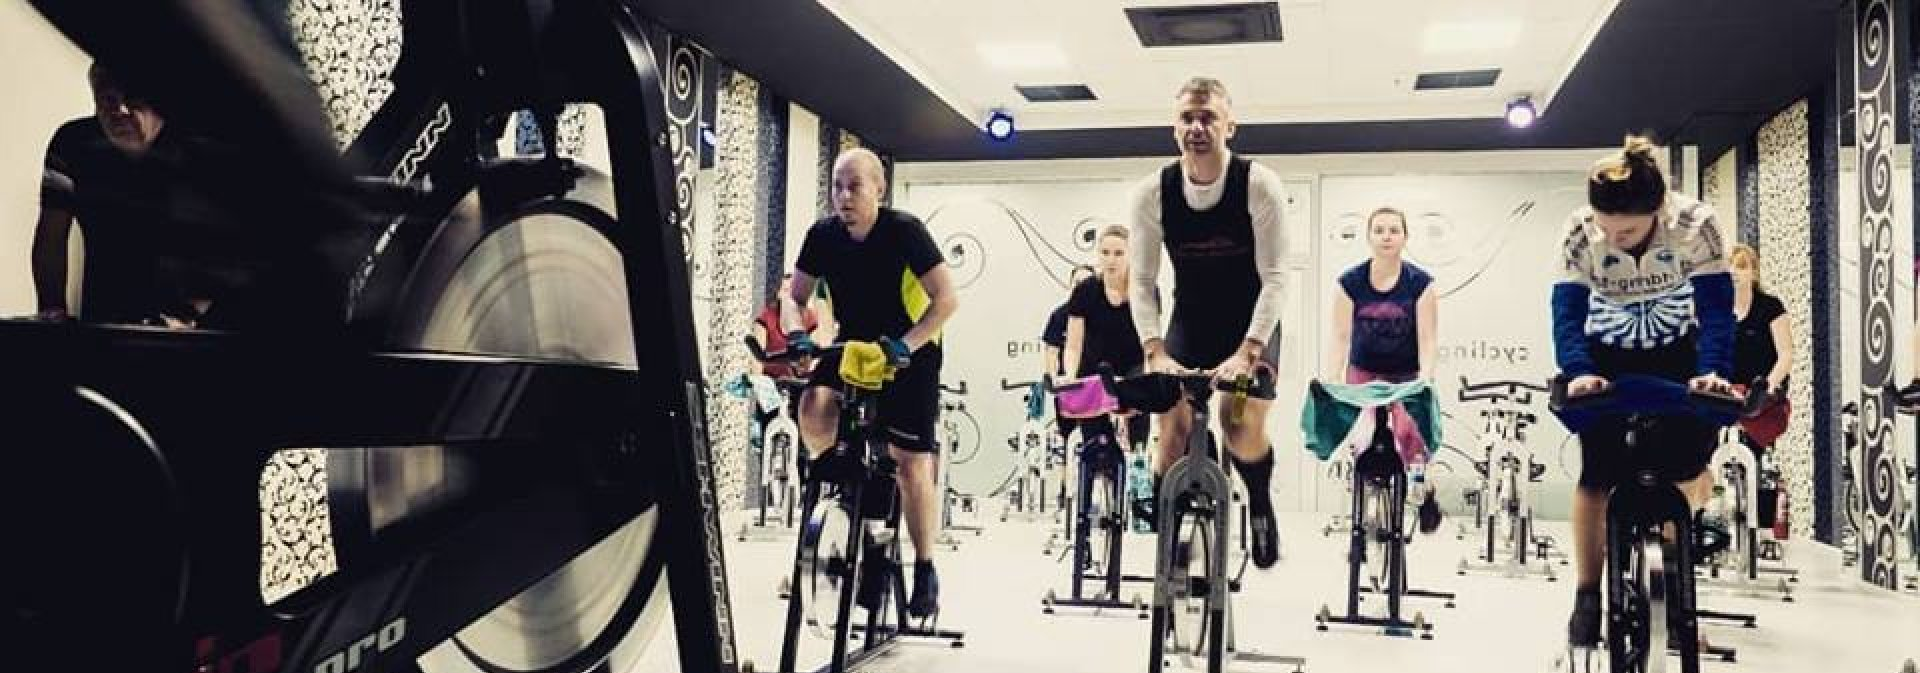 Bamboo Fitness and Spa, Cluj-Napoca, Cluj